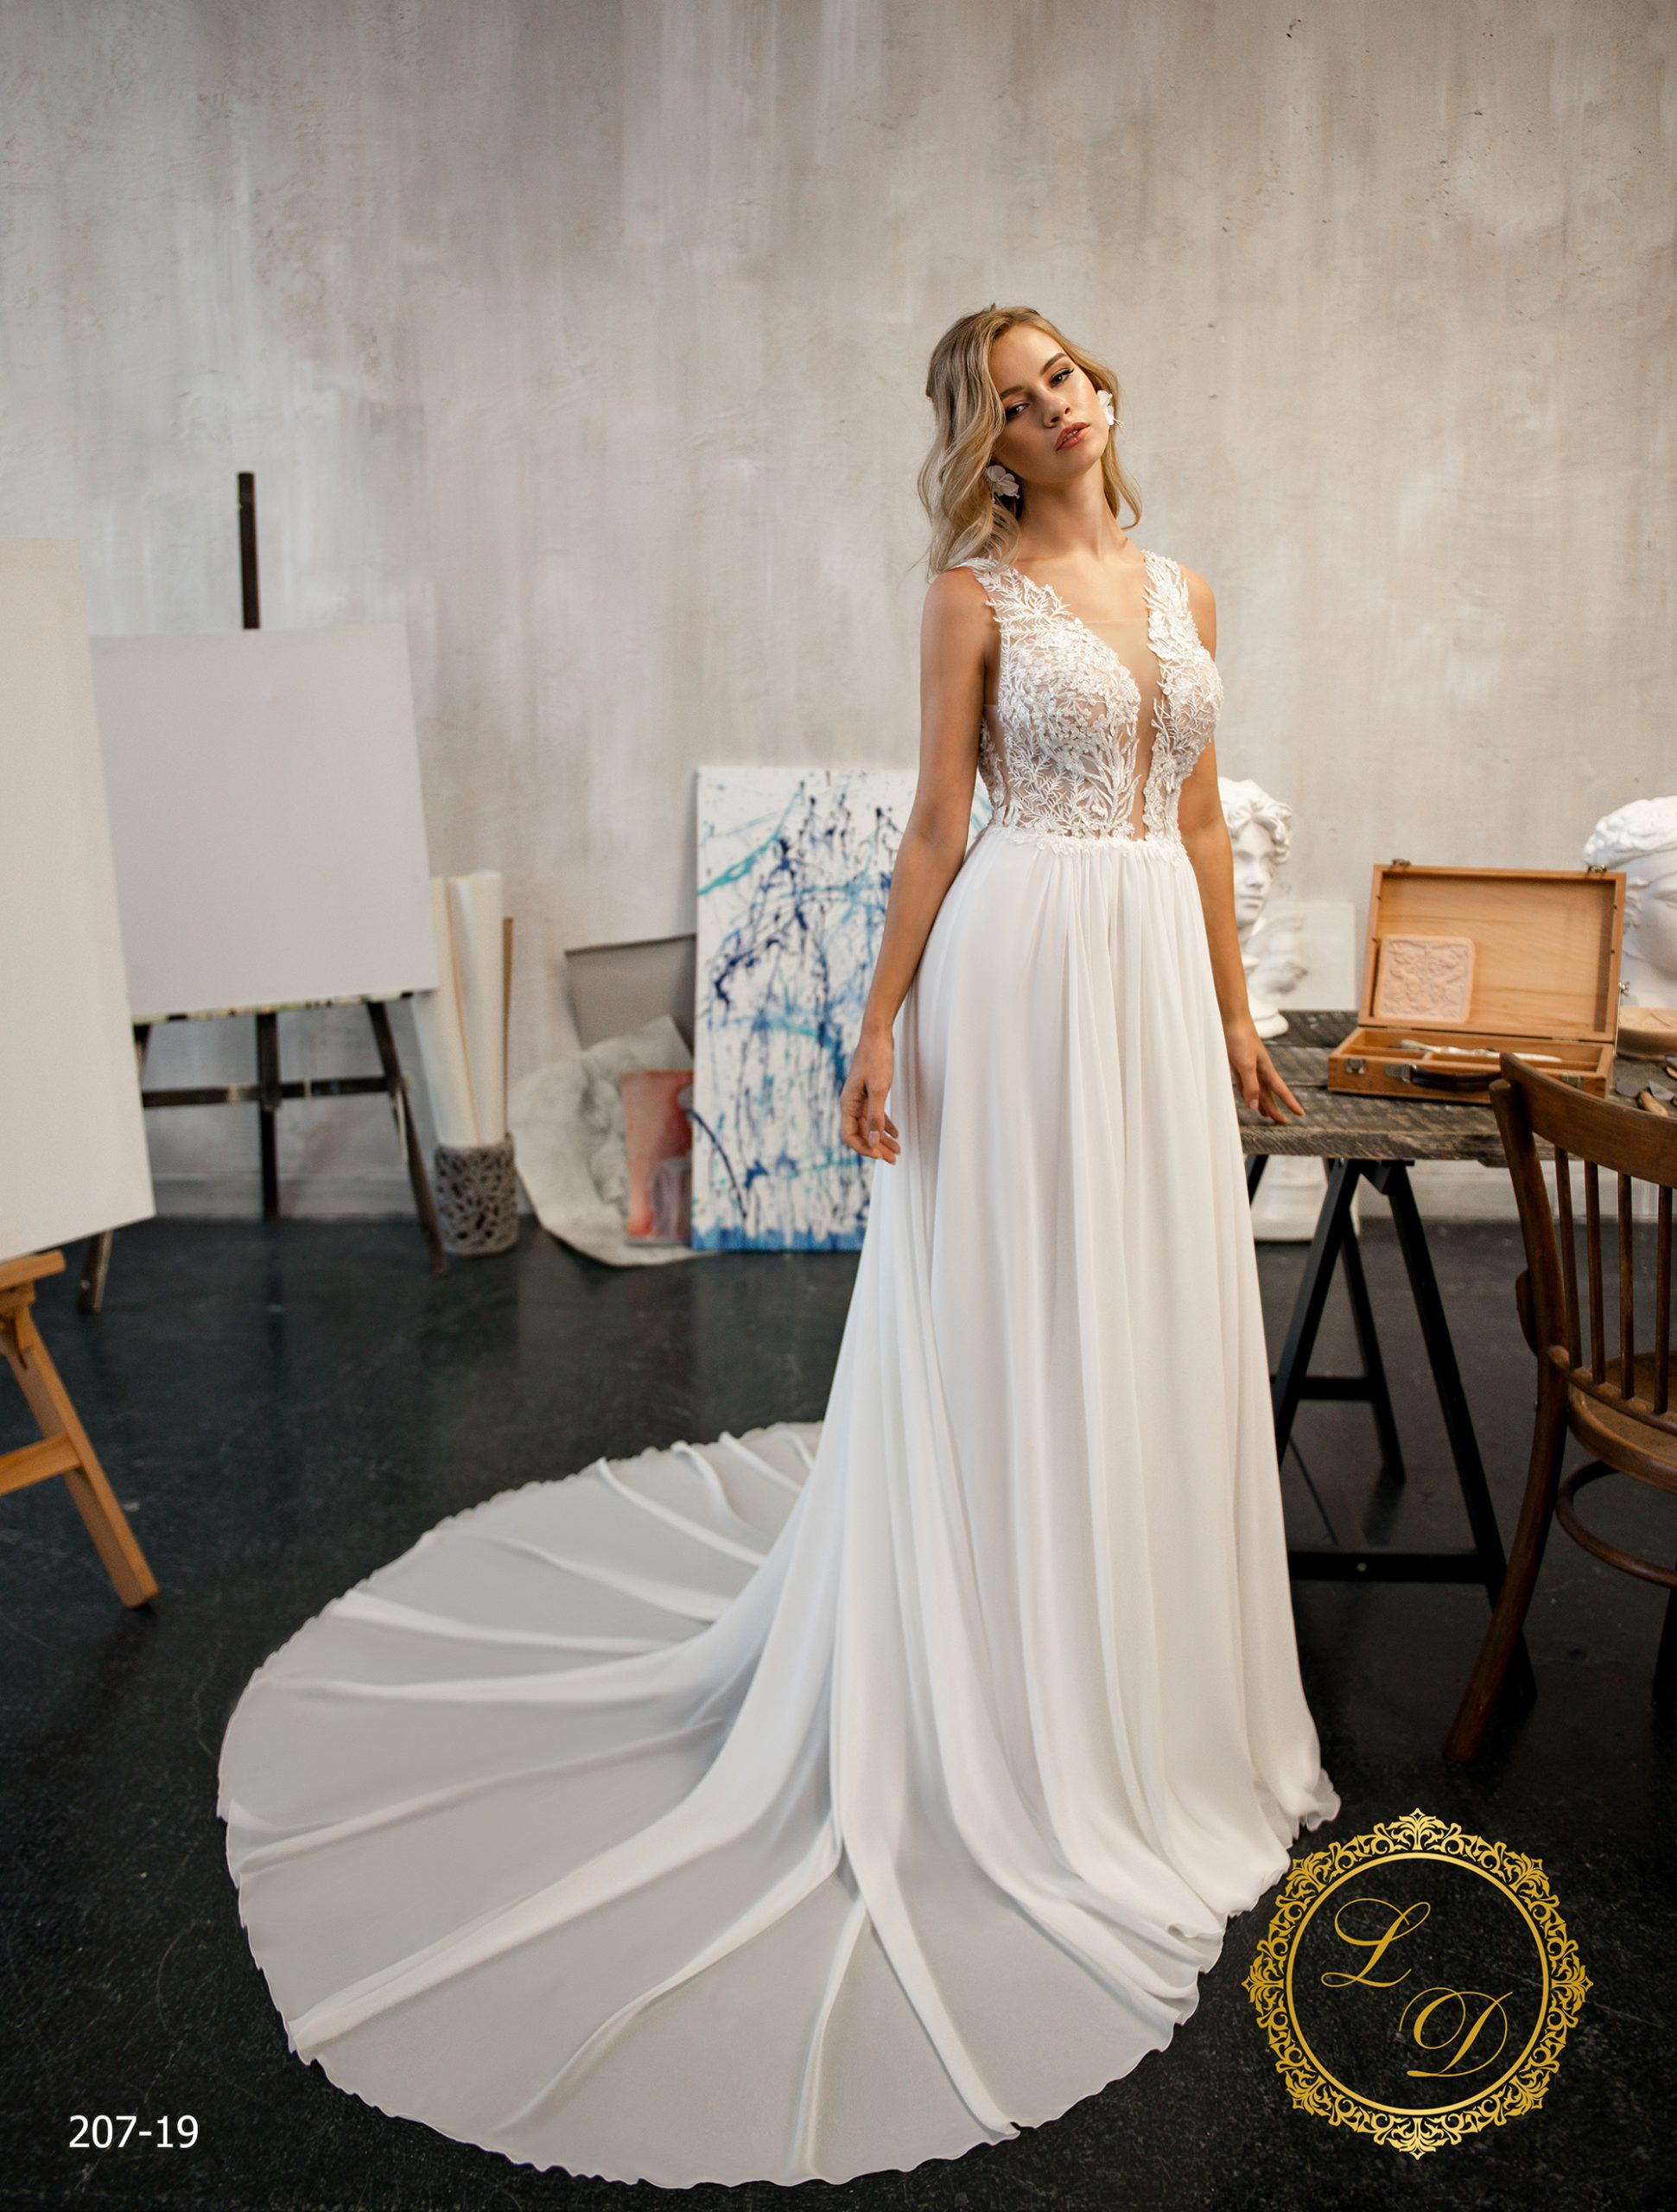 wedding-dress-207-19-1